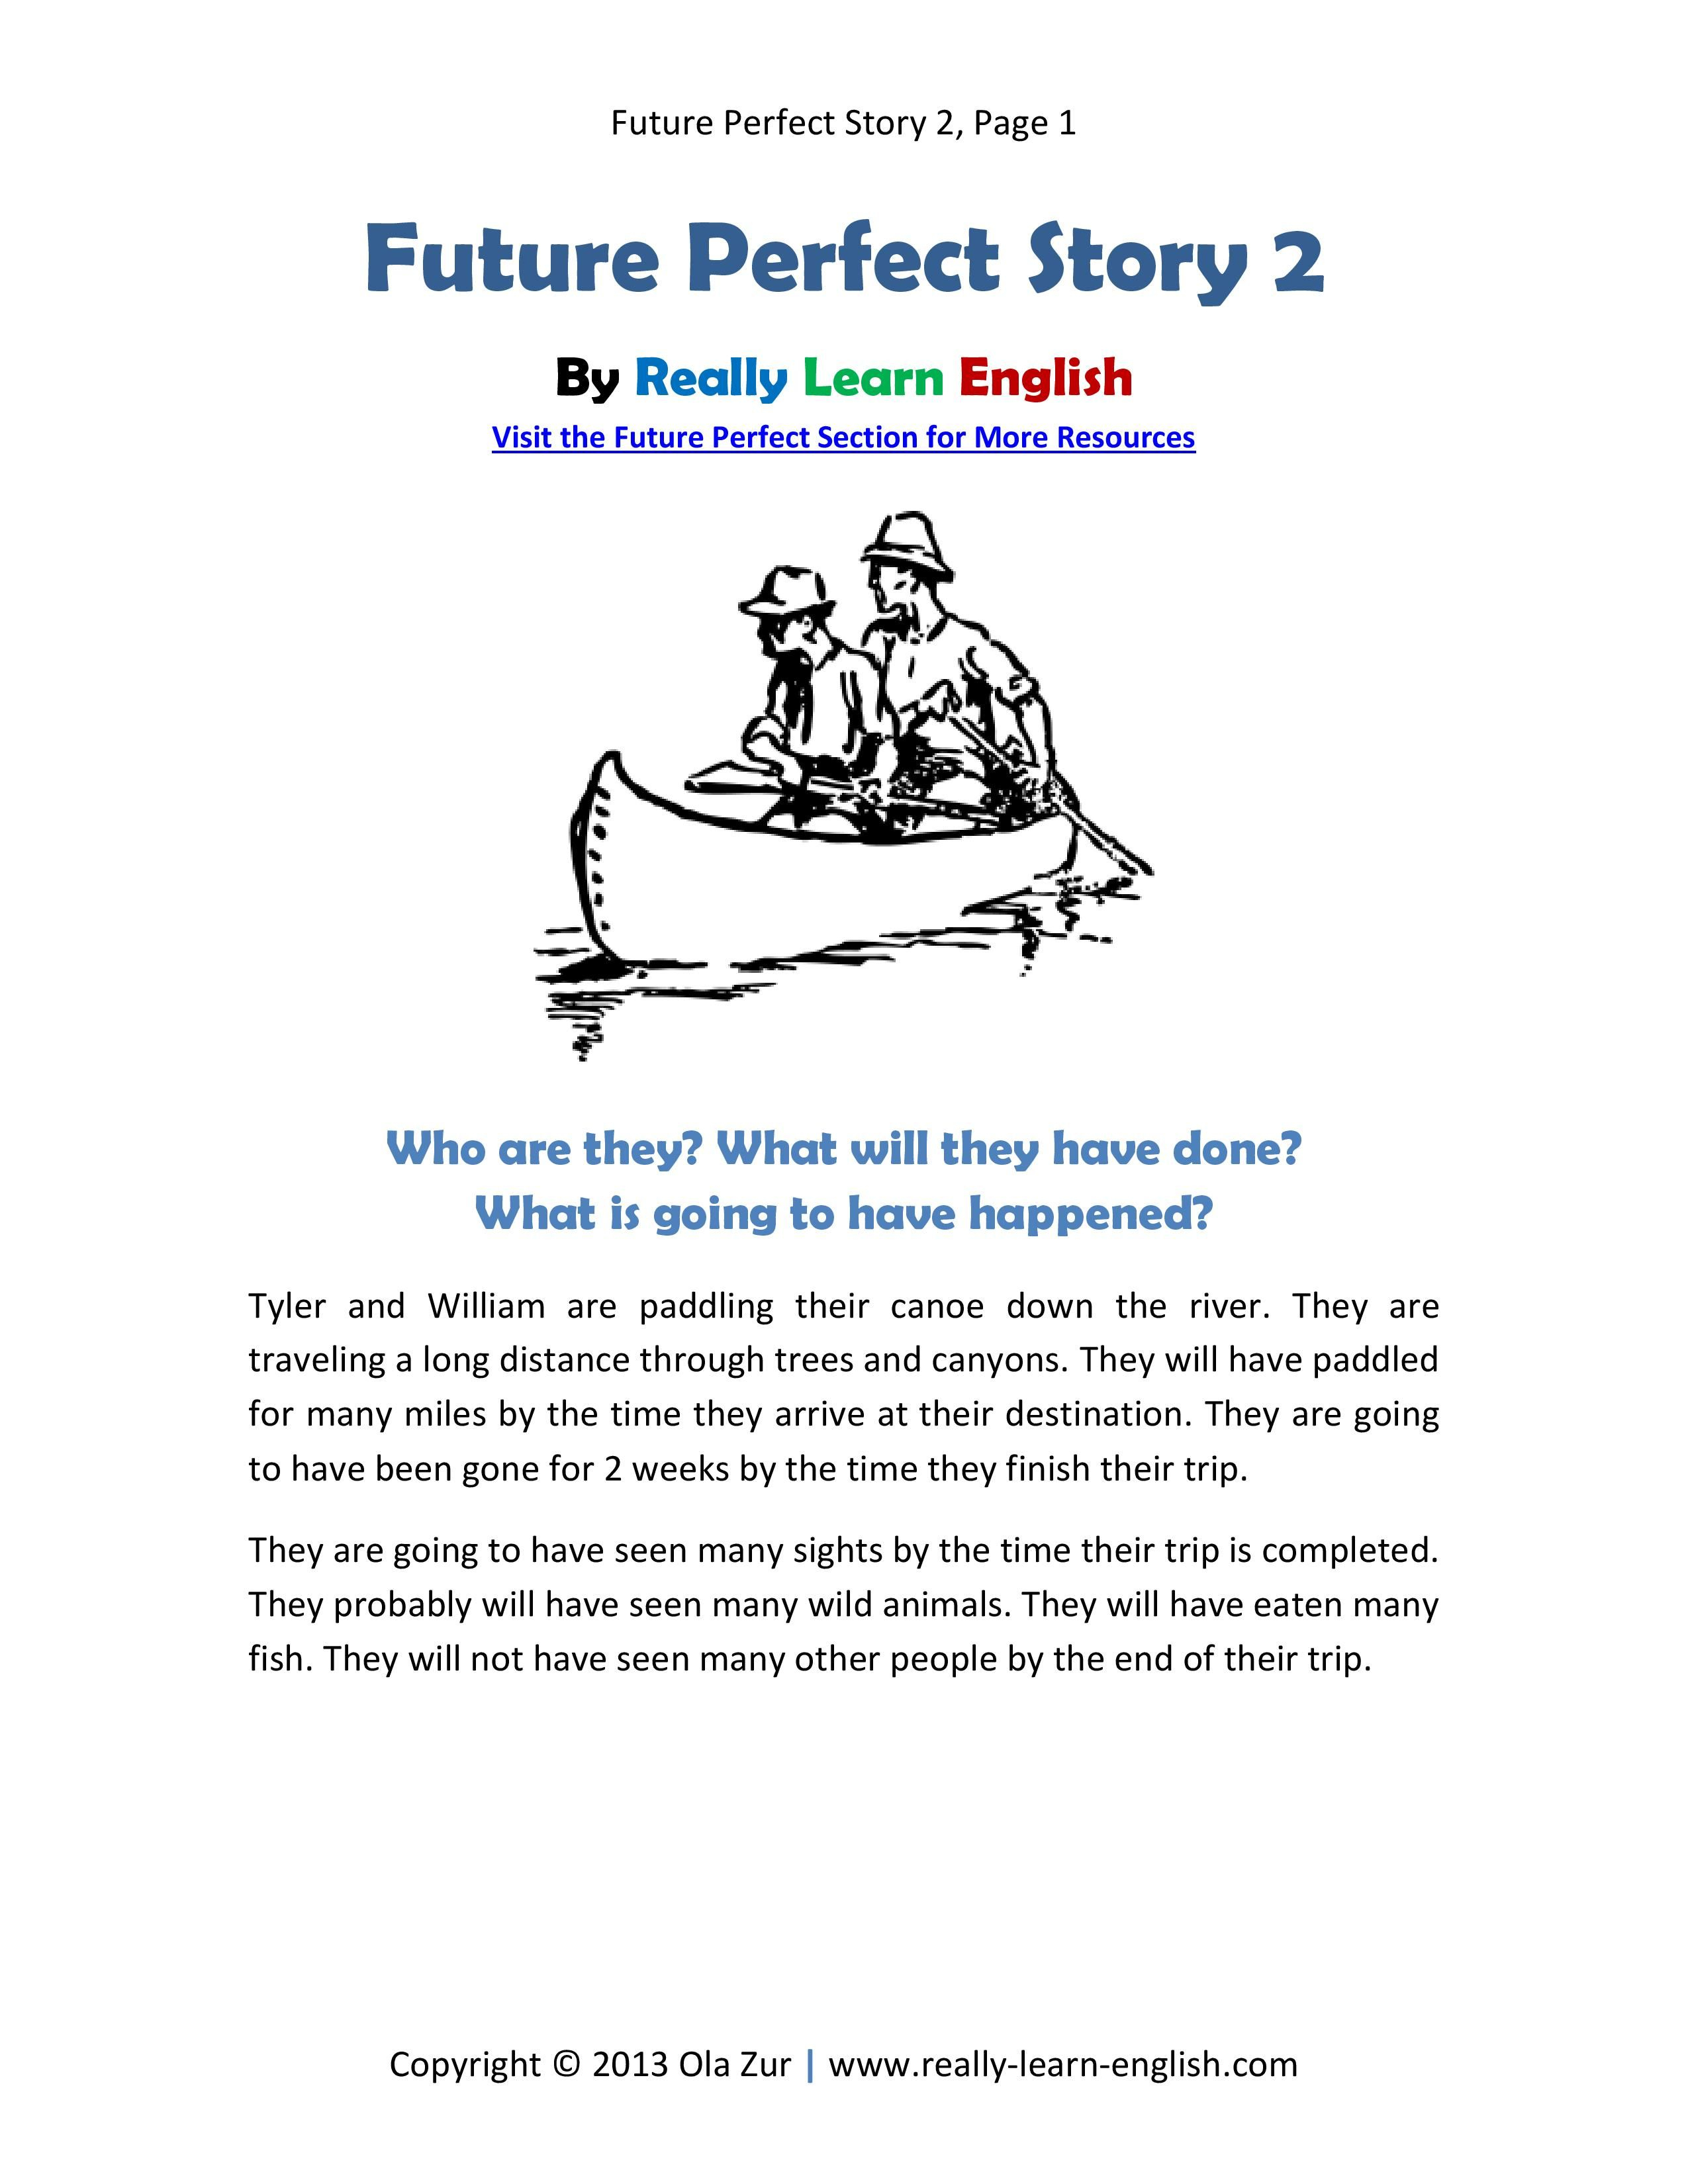 Printable Short Story And Worksheets To Practice The English Future - Free Printable Short Stories For Grade 3